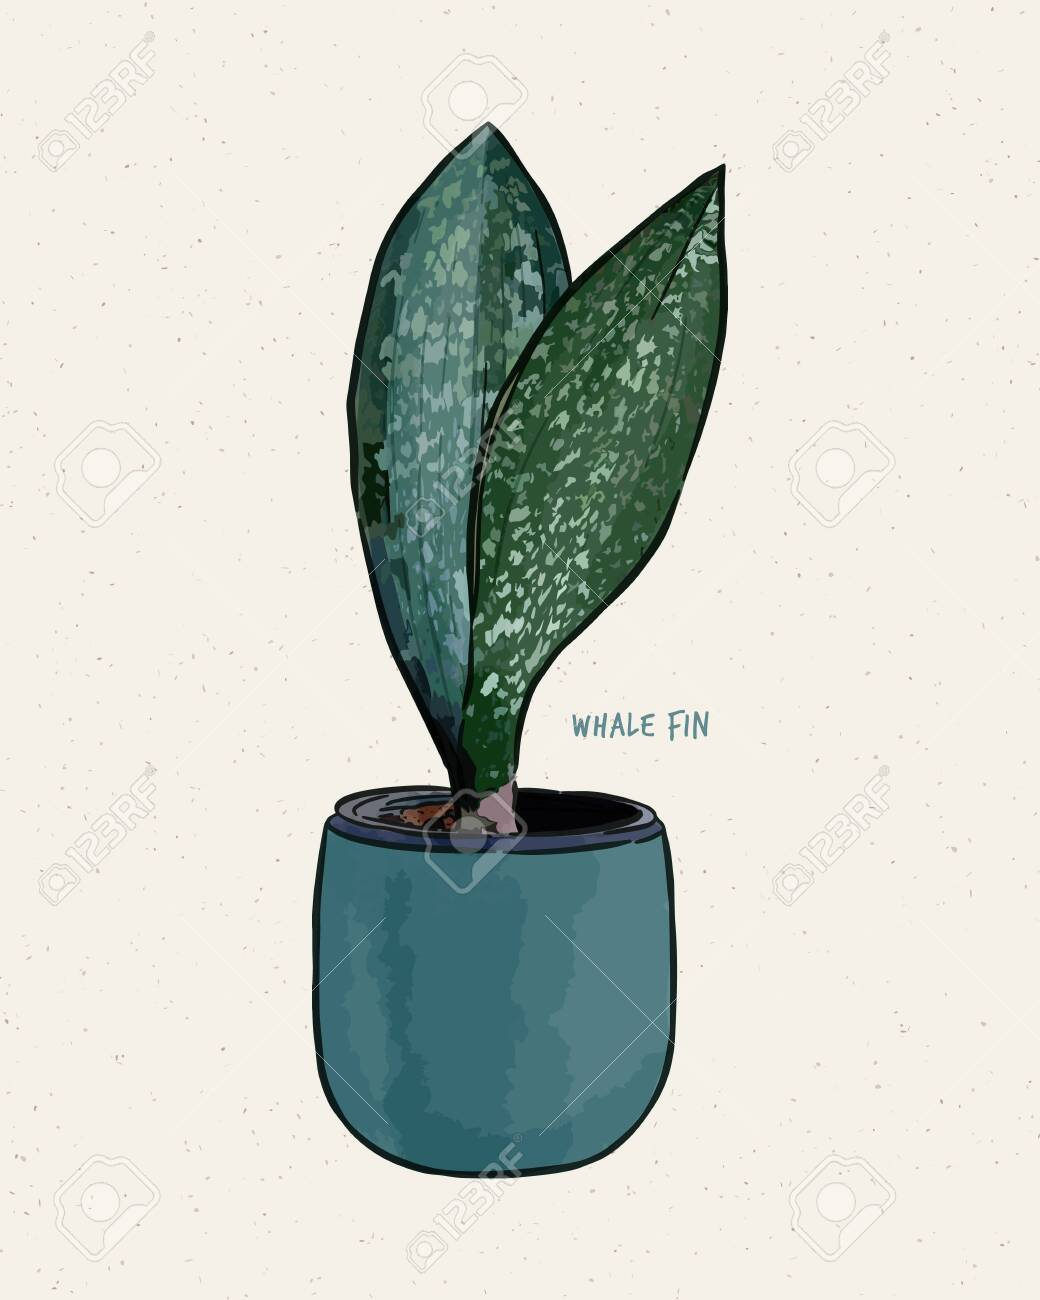 Sansevieria Masoniana Whale Fin Snake Plant Paddle Plant Hand Royalty Free Cliparts Vectors And Stock Illustration Image 148151297